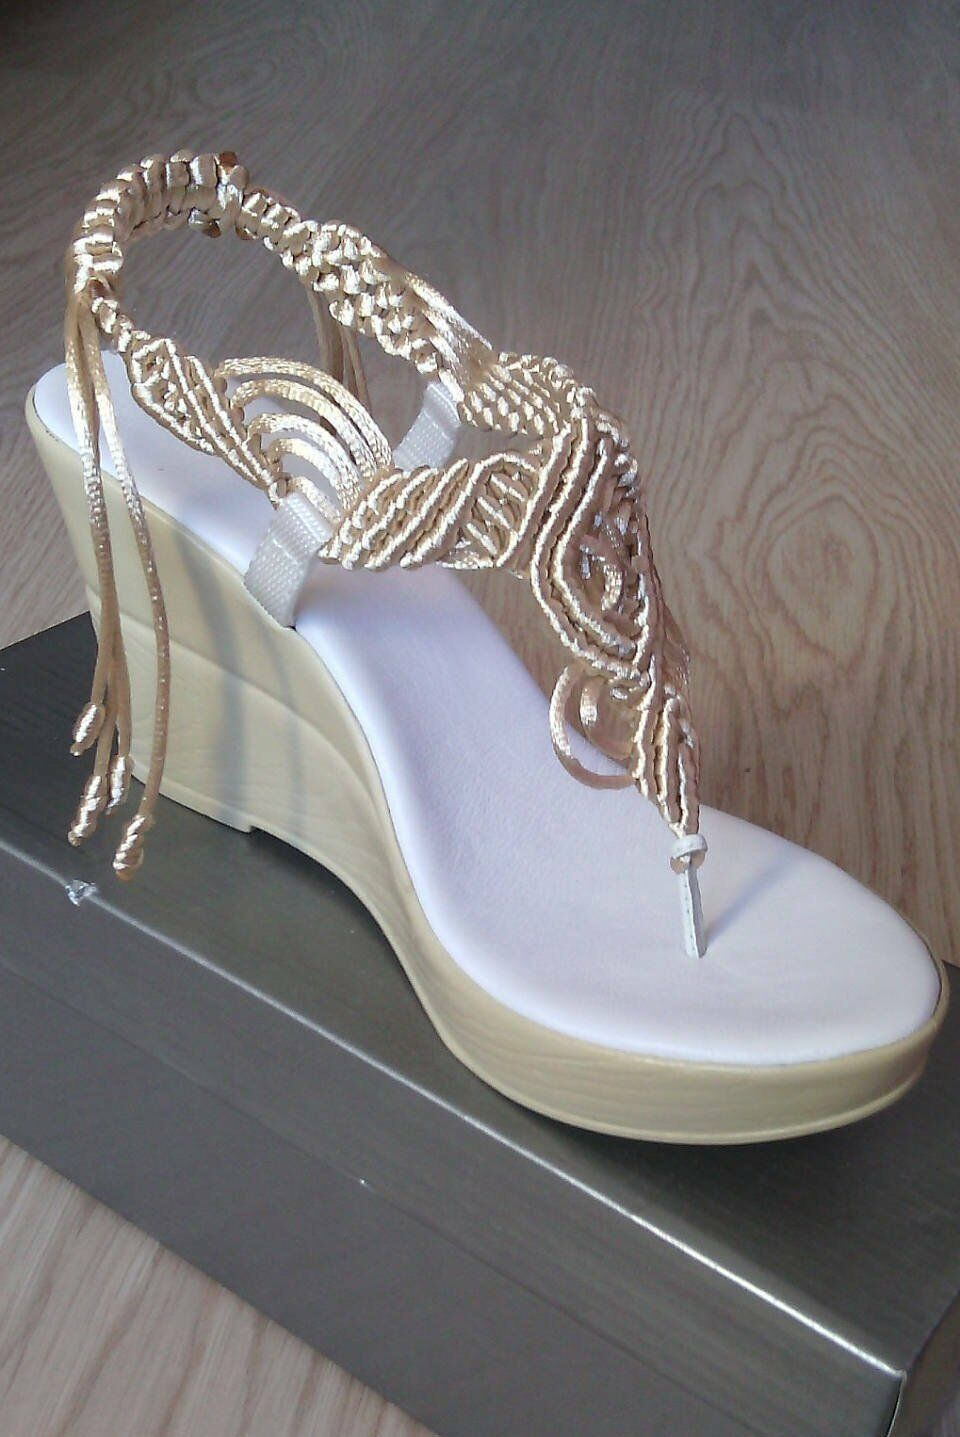 Bridal Sandals, Wedding Shoes, Comfortable Shoes, Lace up Sandals,Rope Sandals